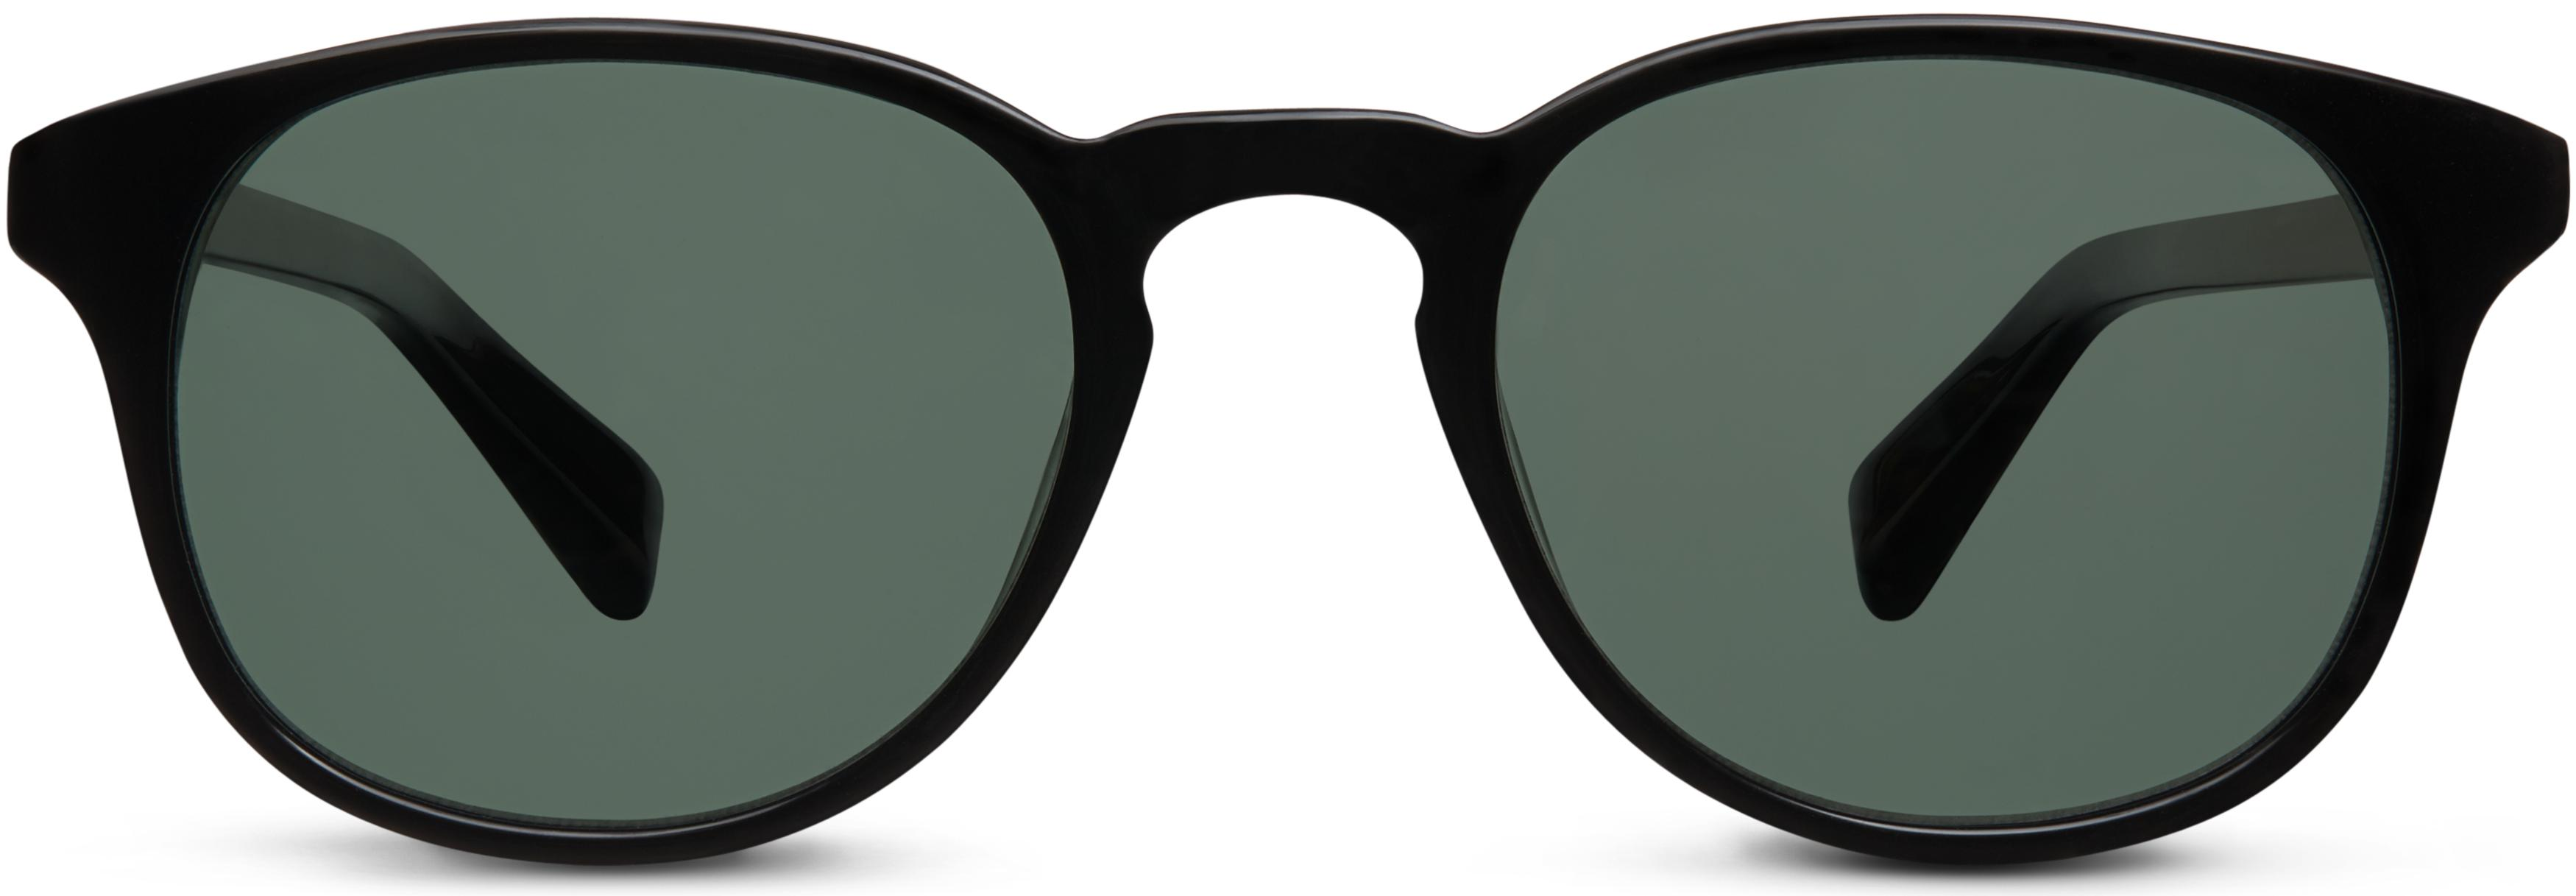 204ef06dad1 Men s Sunglasses